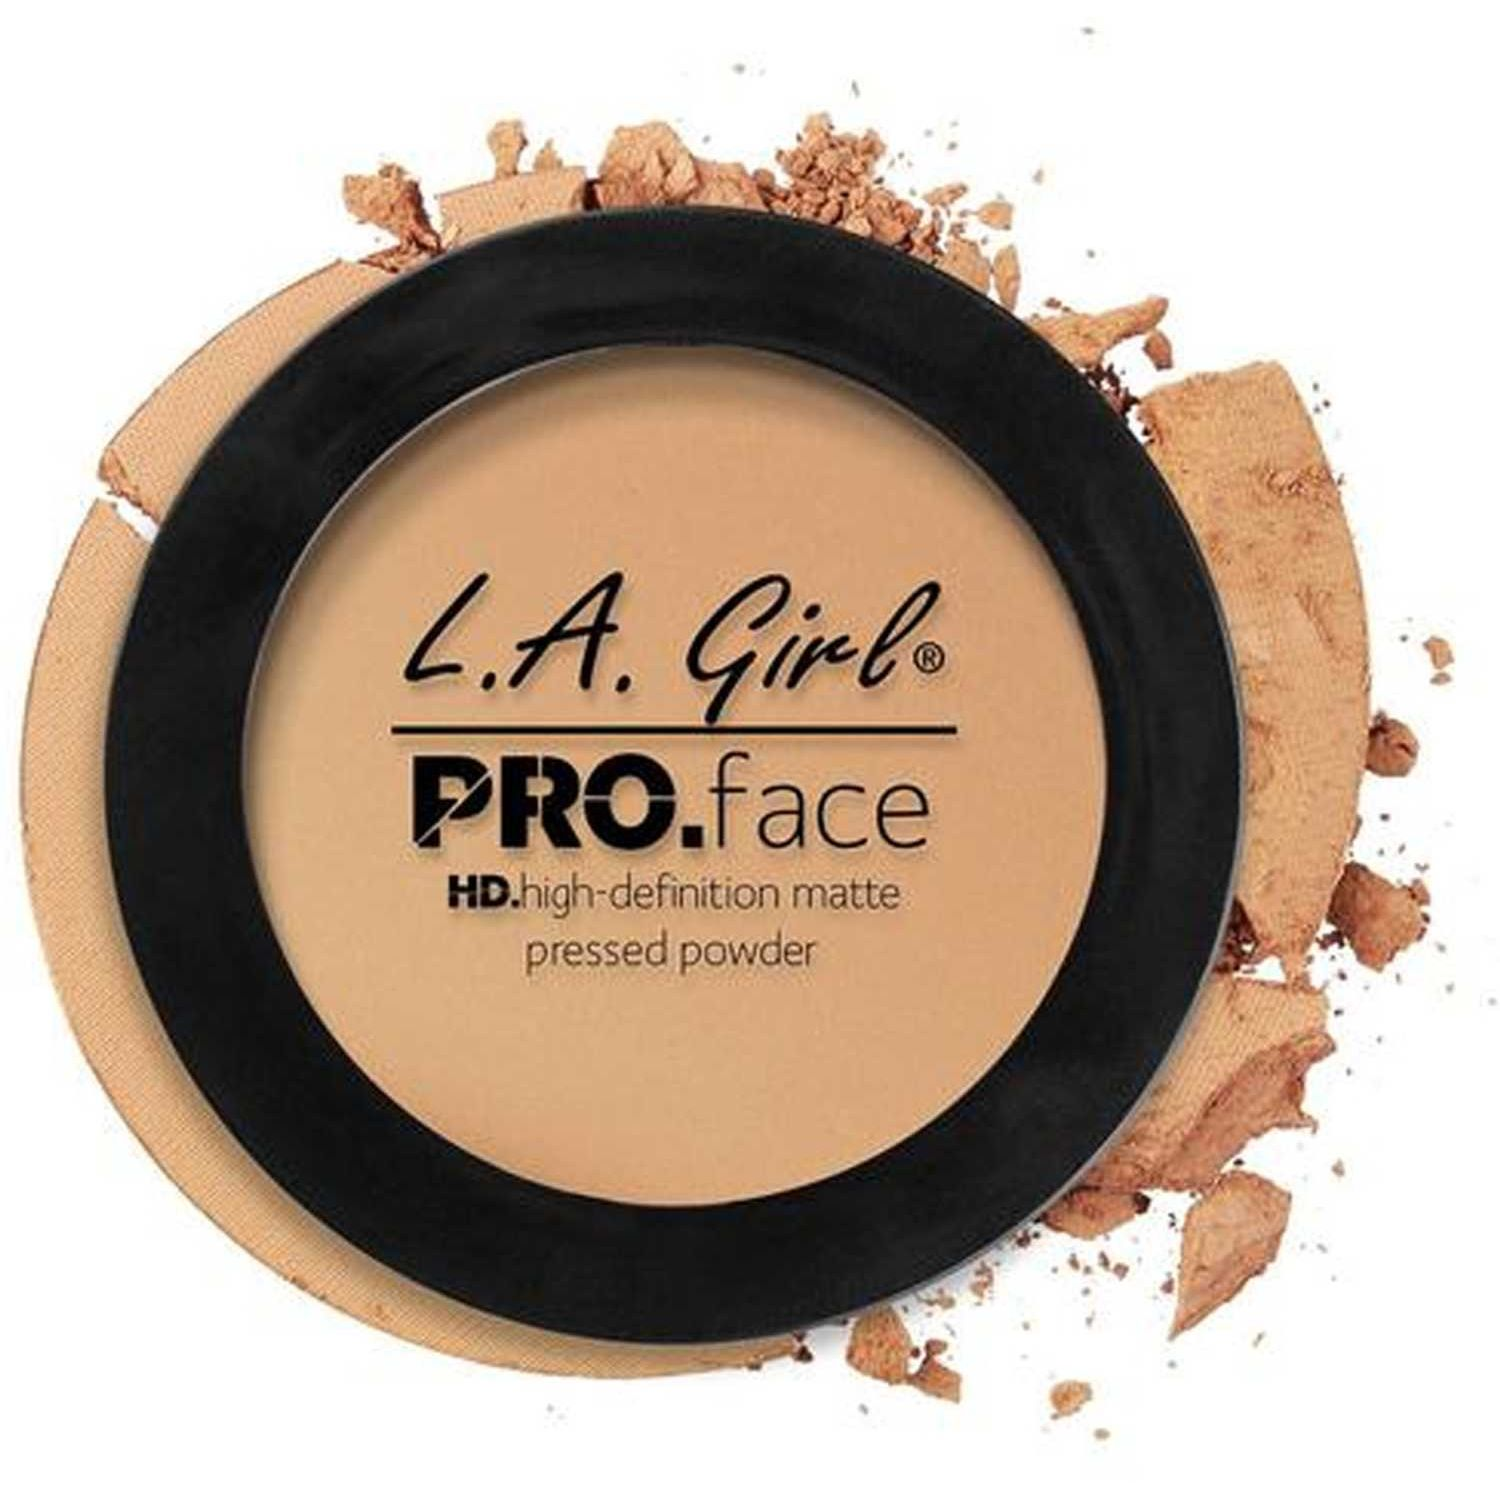 L.a. Girl pro face matte pressed powder Soft Honey Correctores y neutralizadores